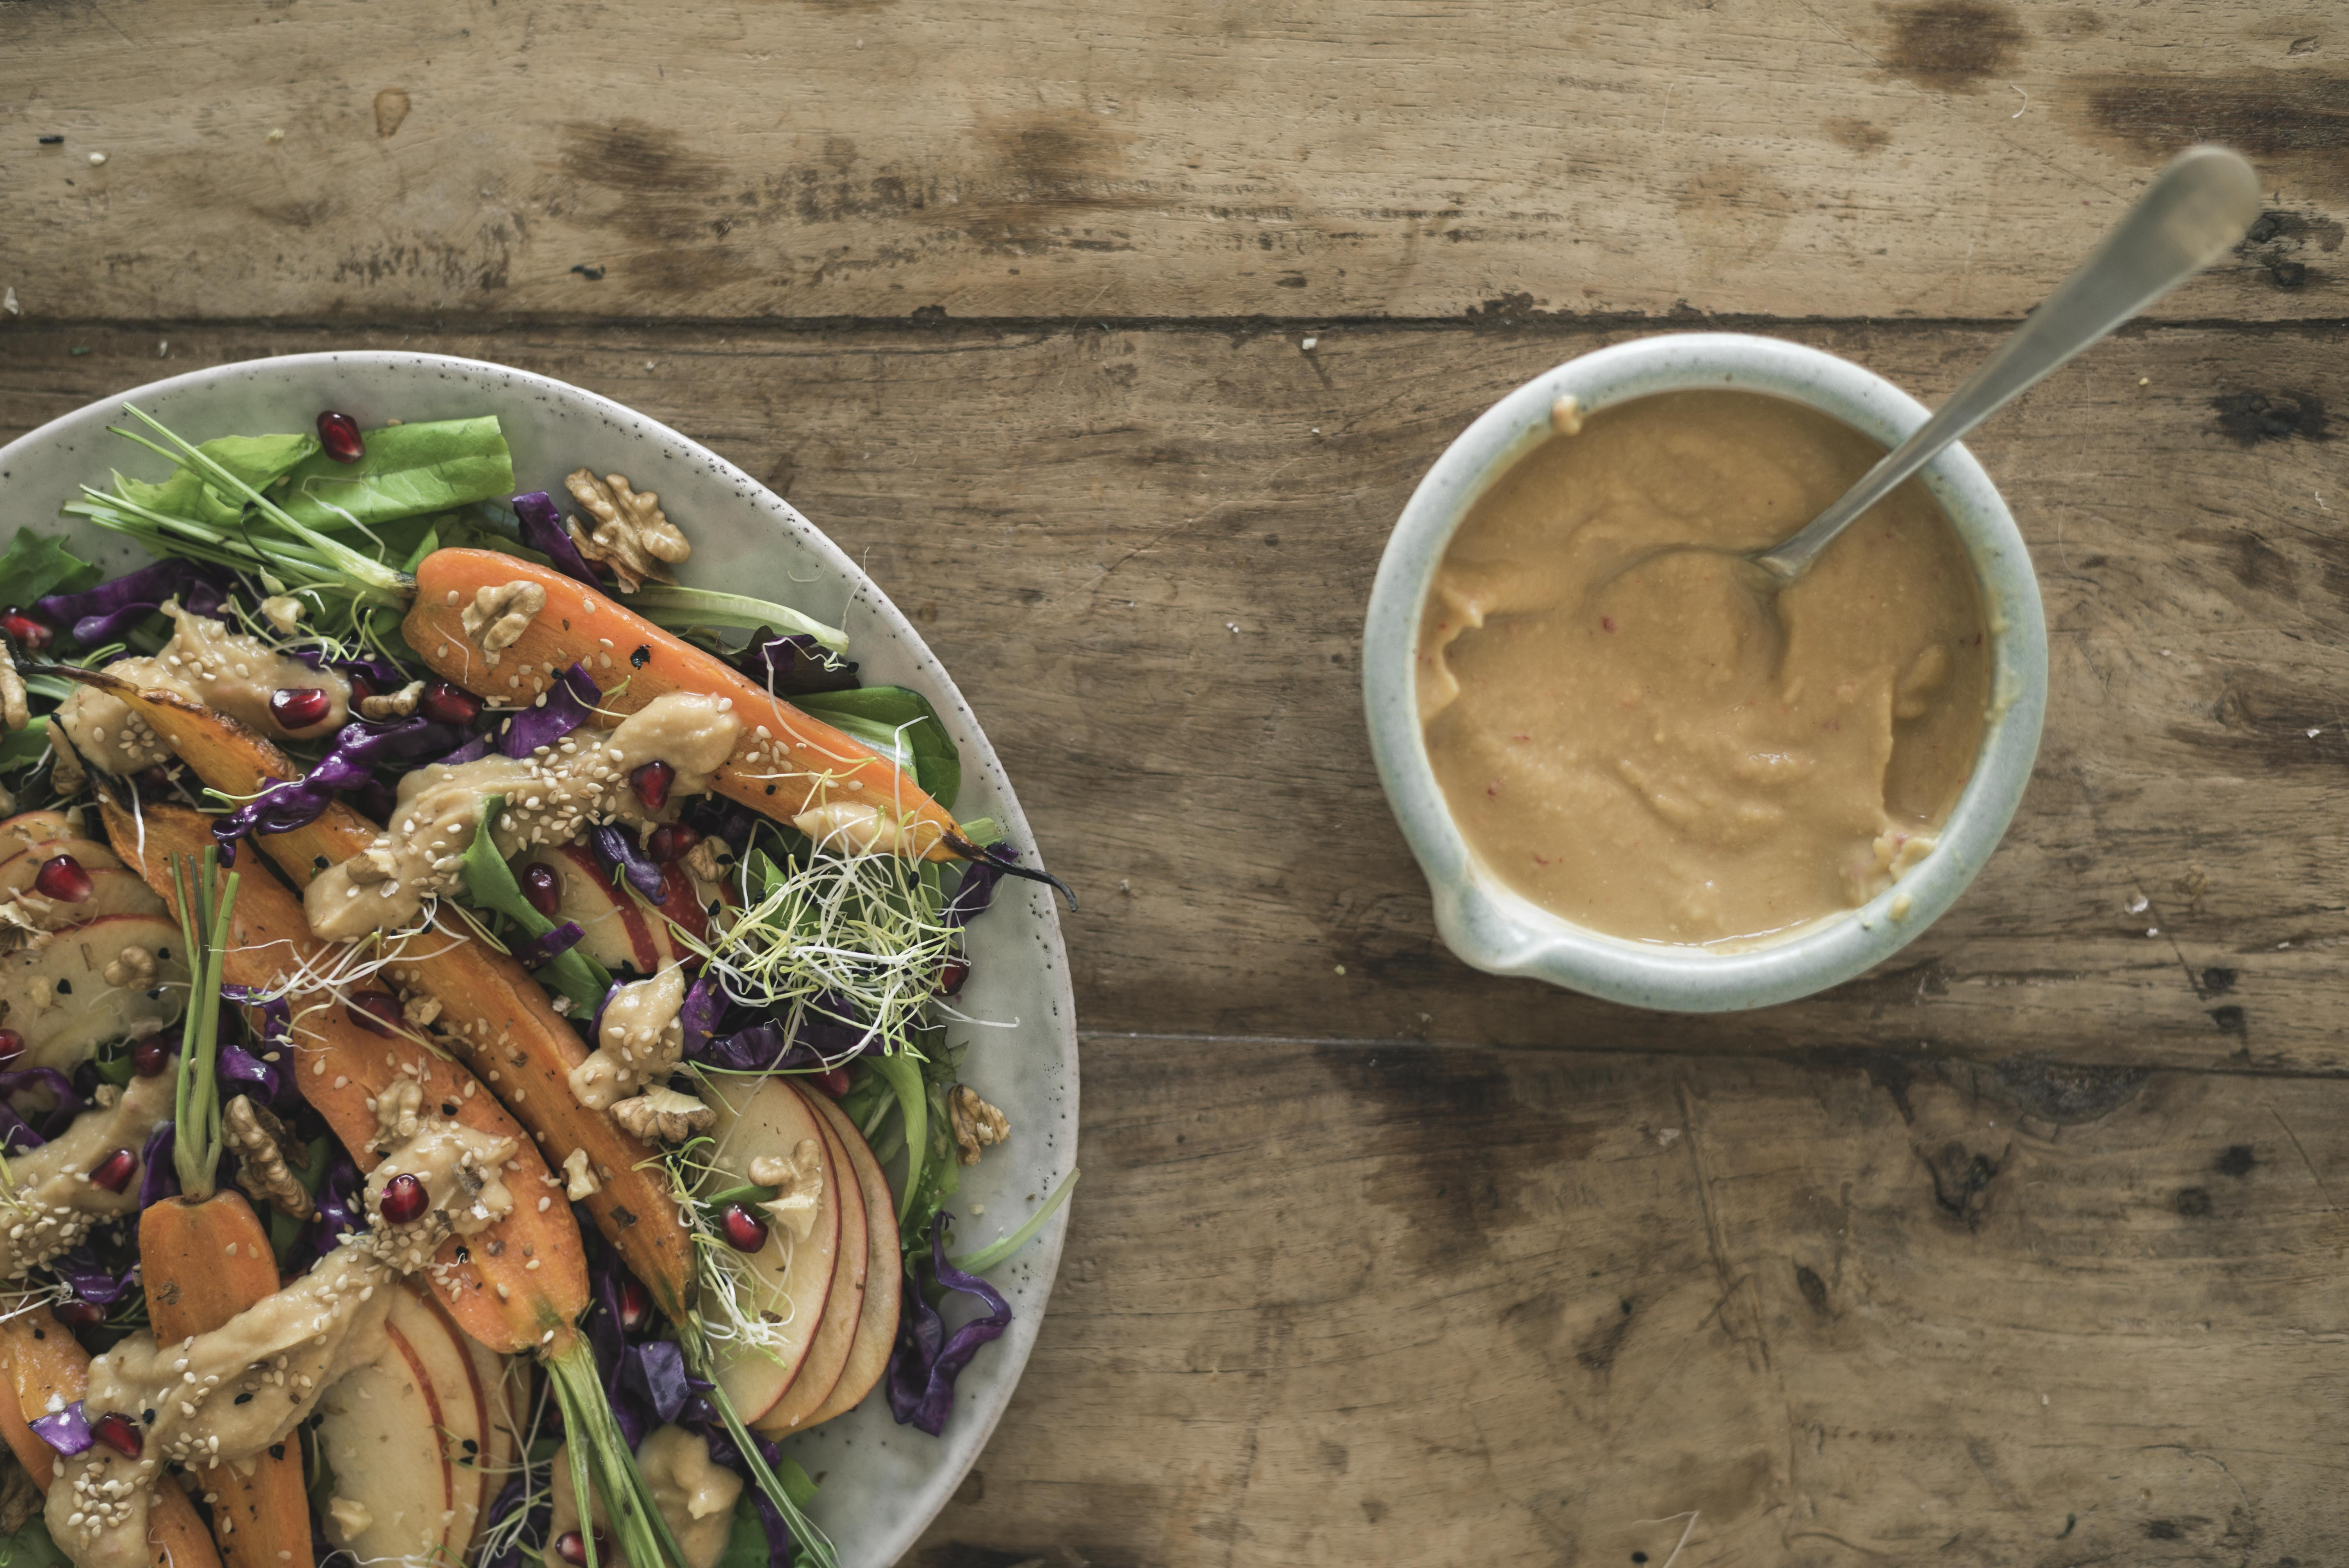 tahini and chickpeas dressing for a fall salad, styled on a wood table